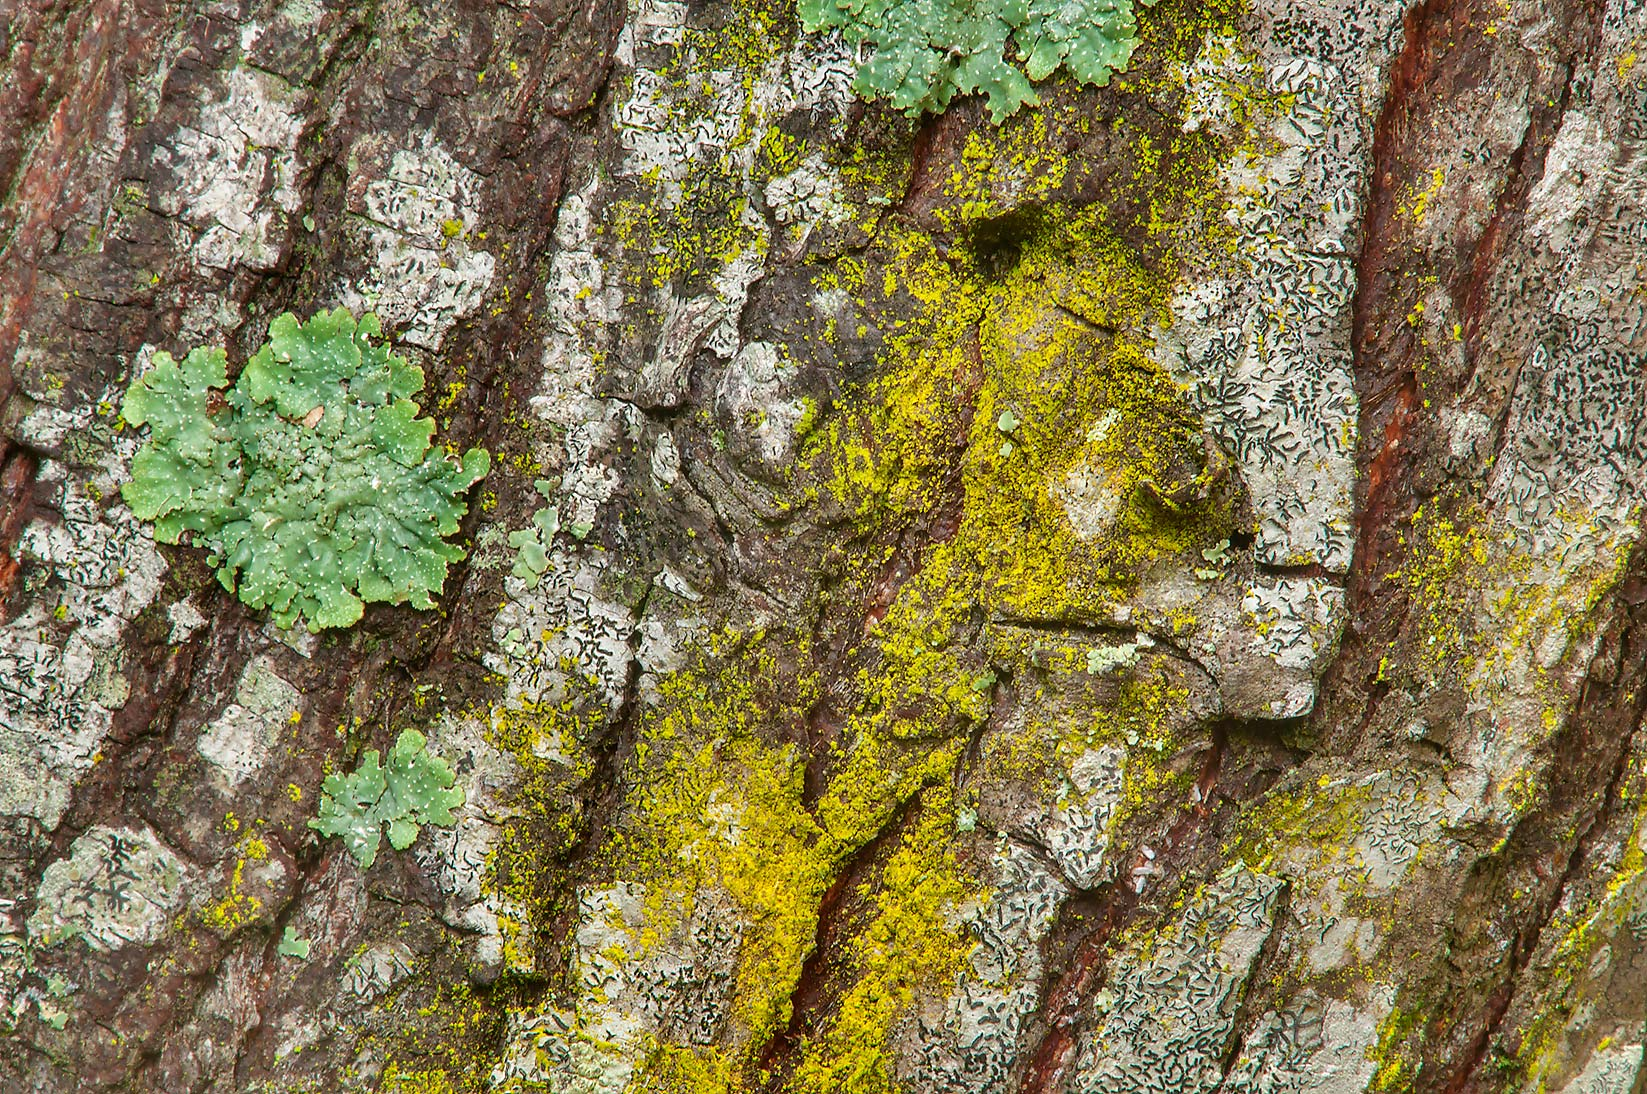 Yellow and green lichens on tree bark on Racoon...Creek Park. College Station, Texas